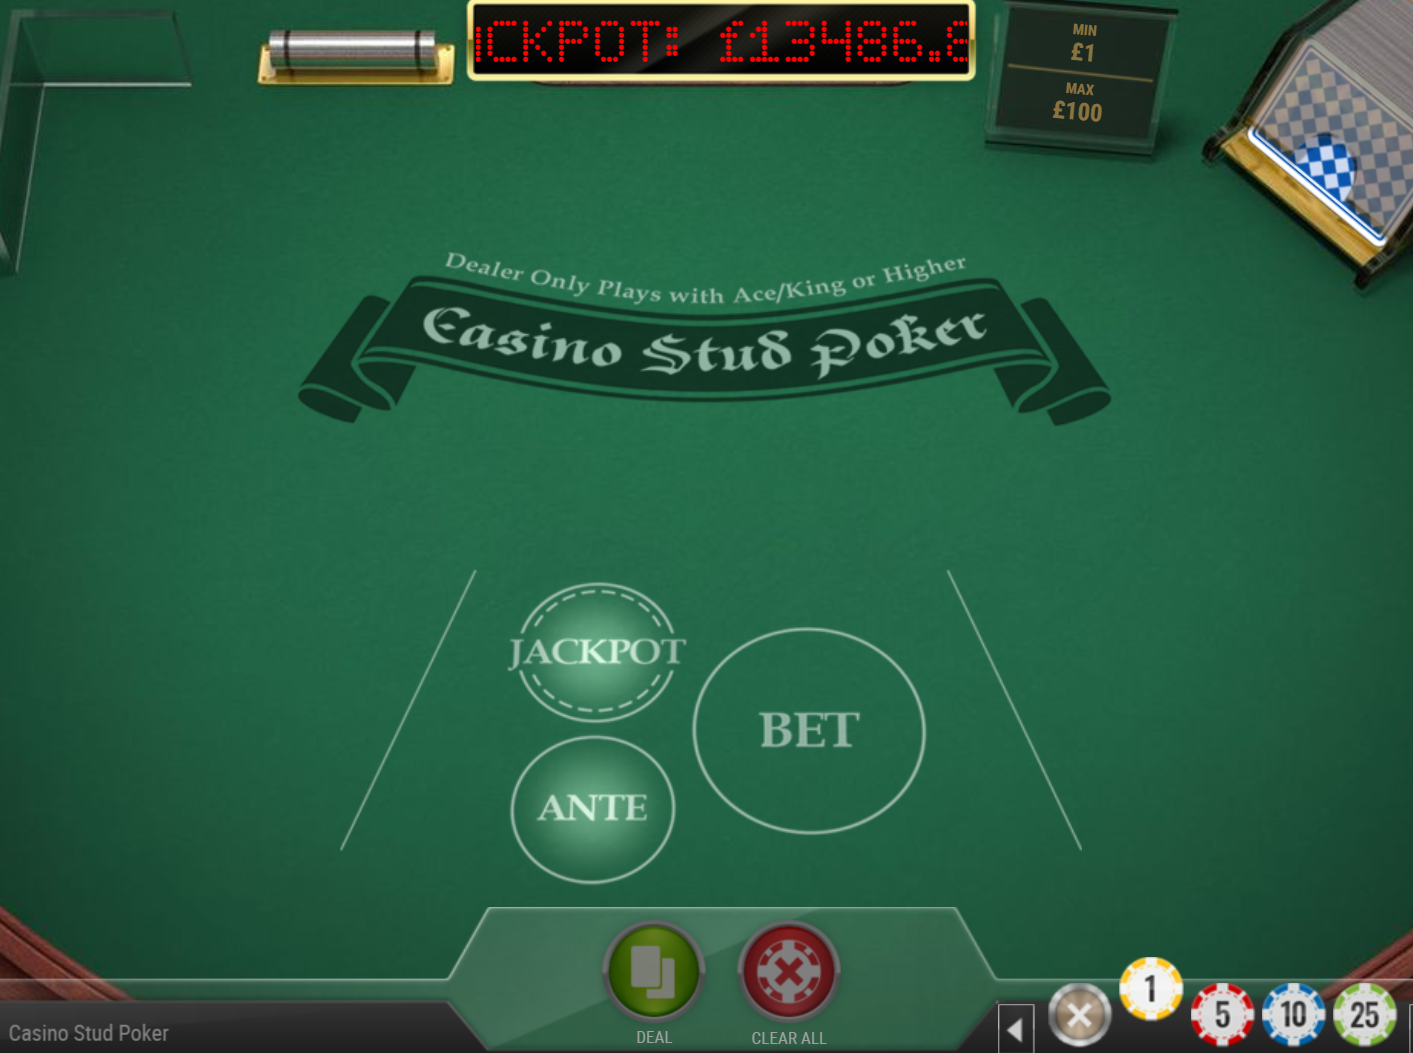 Casino Stud Poker is one of the great slot games you can play at Casoola Casino